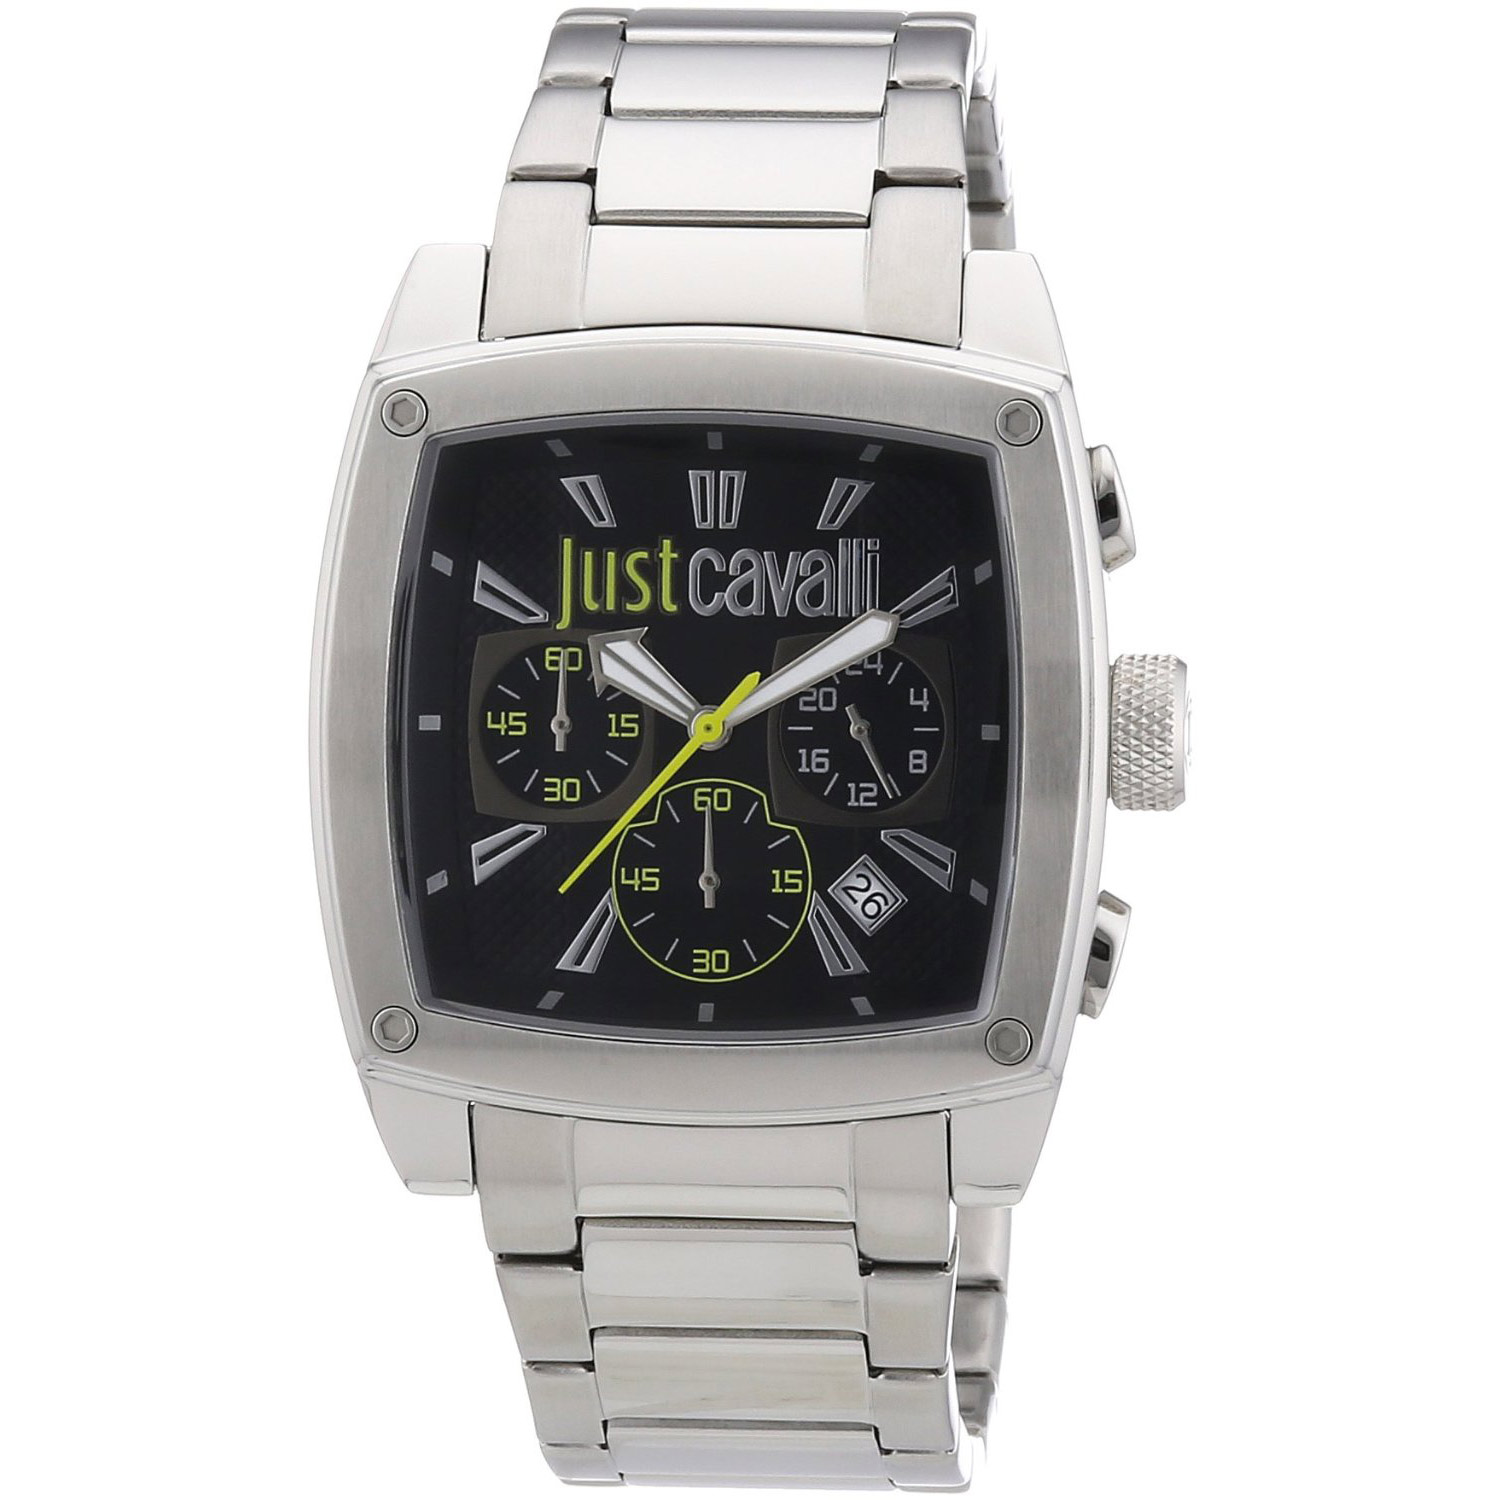 Just Cavalli Pulp Mens Chronograph Square Watch St